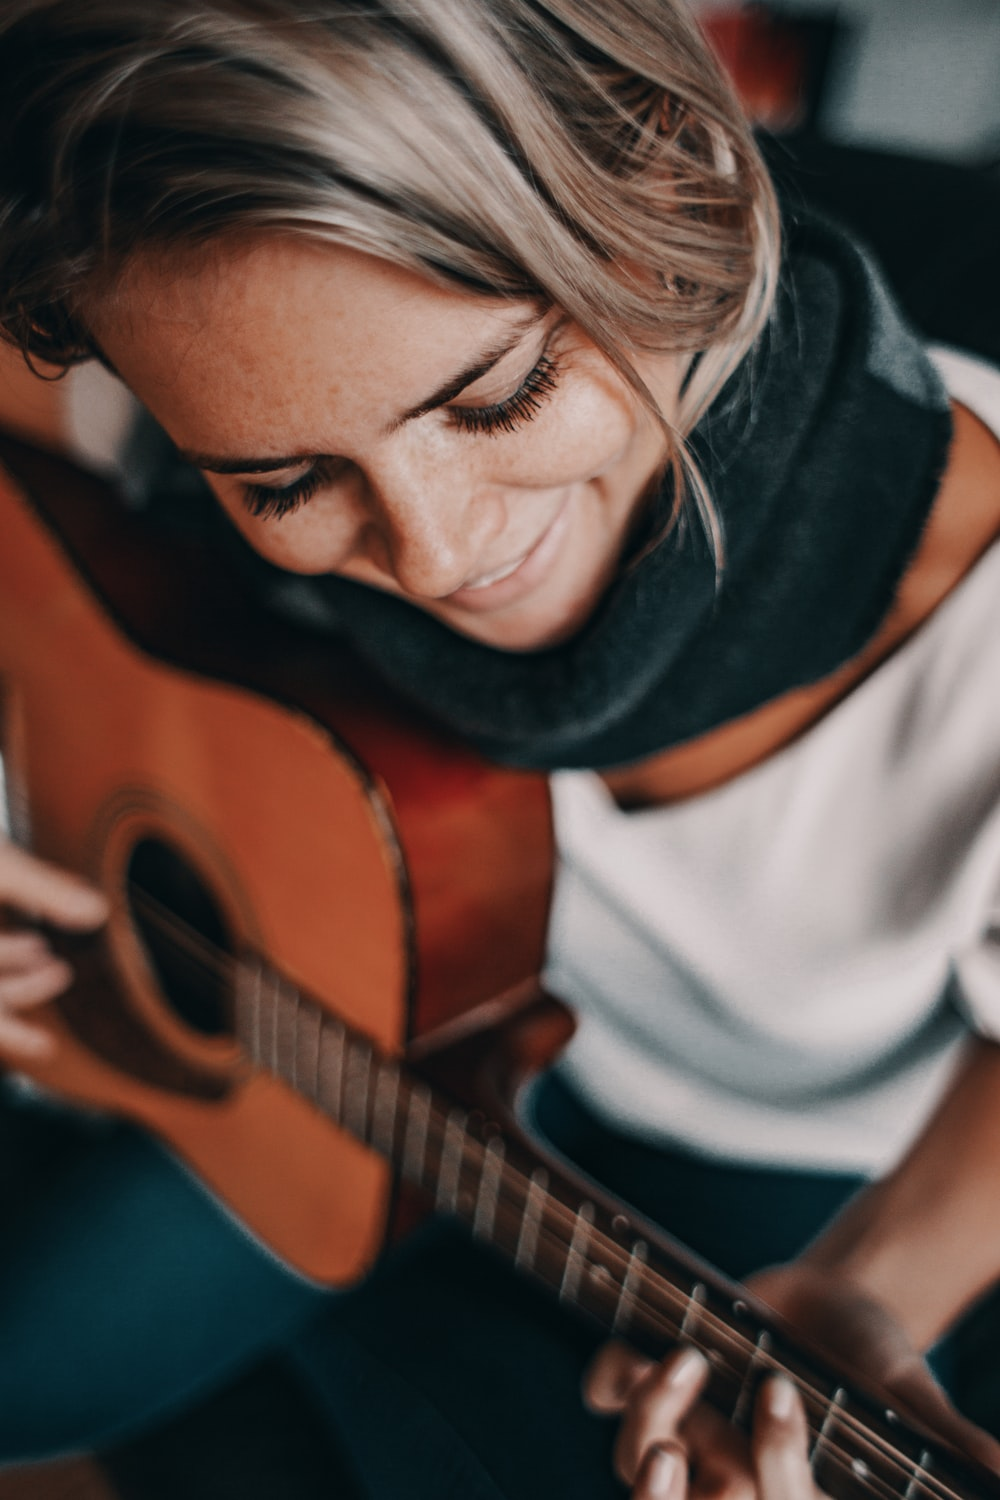 woman in white top playing acoustic guitar